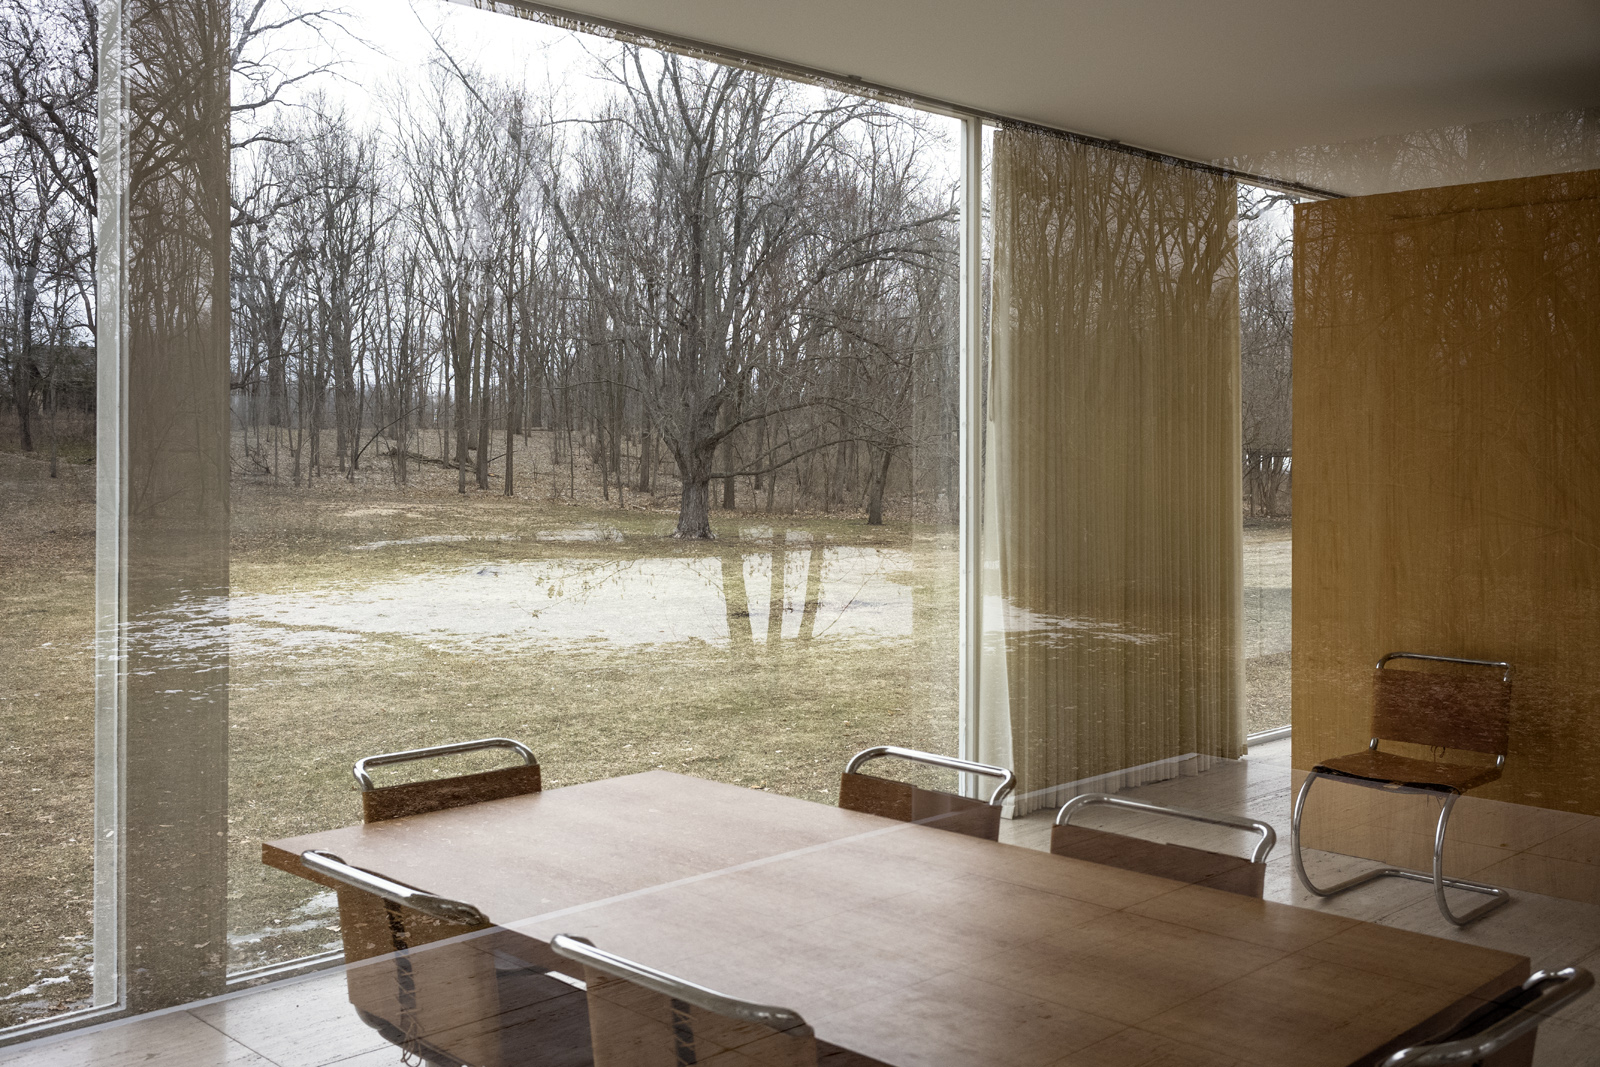 Farnsworth House 13 Plano 2019